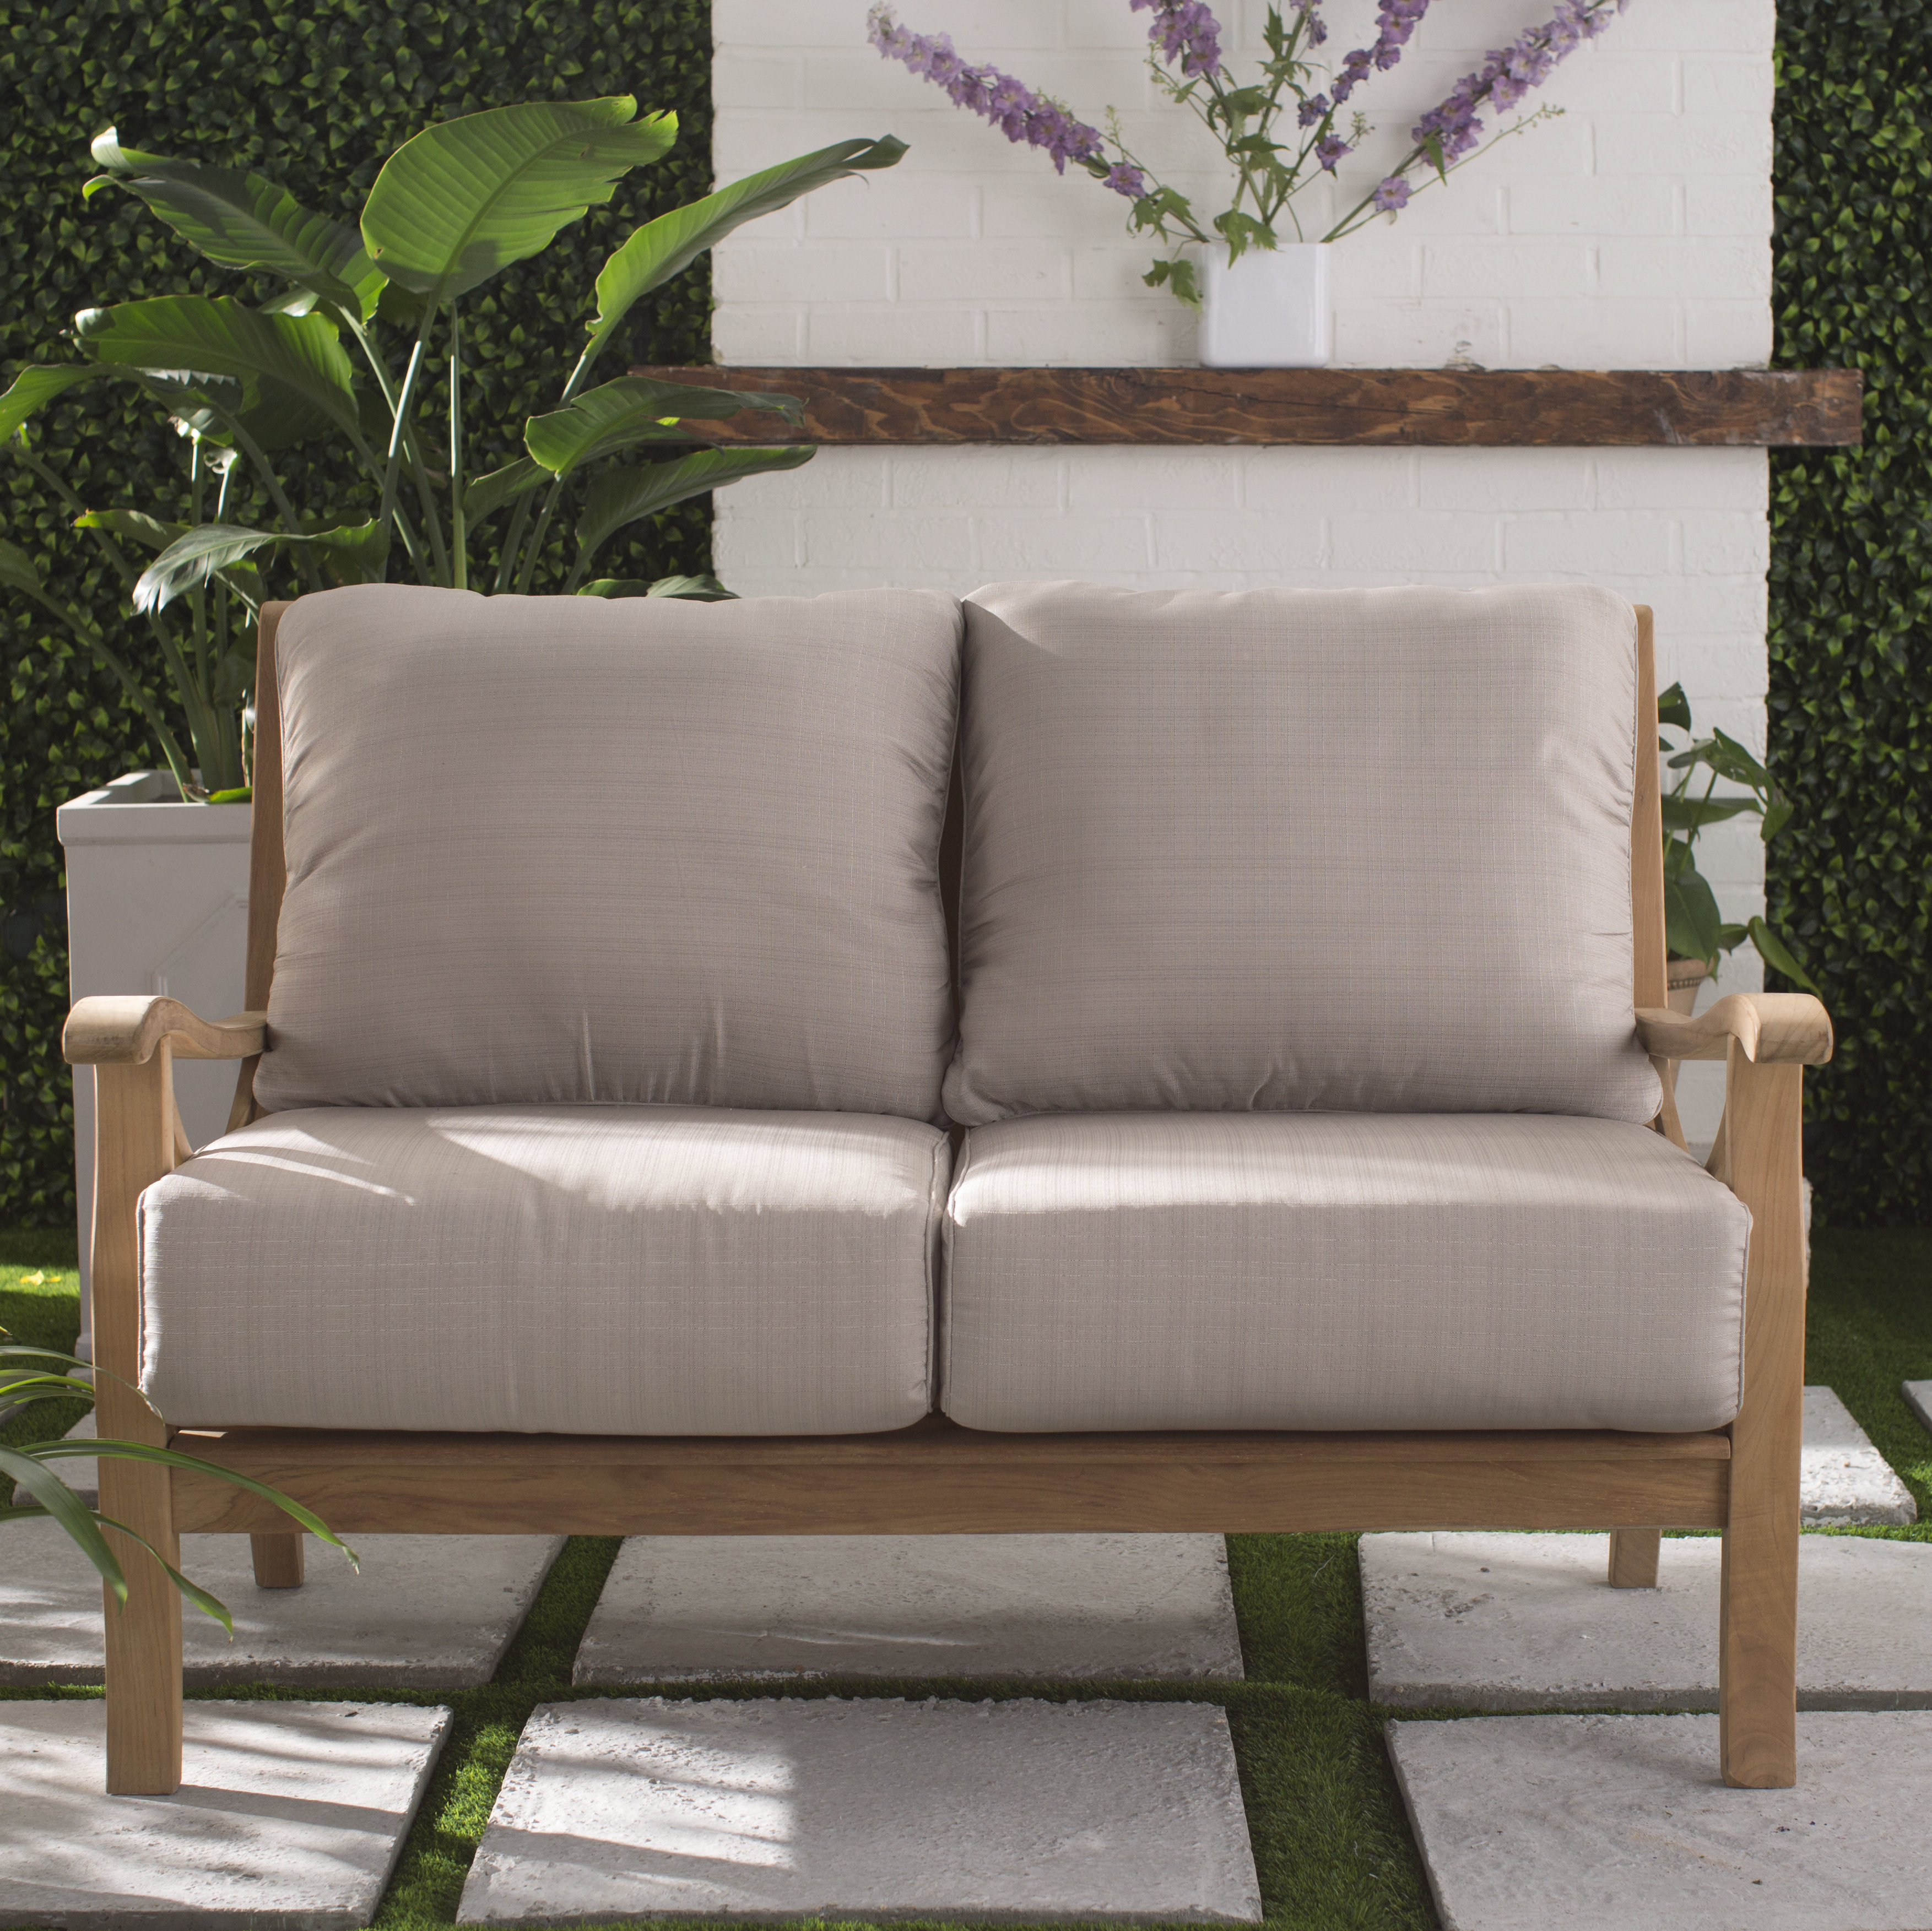 Montford Teak Loveseats With Cushions Inside Most Recently Released Brunswick Teak Loveseat With Cushions (View 8 of 20)